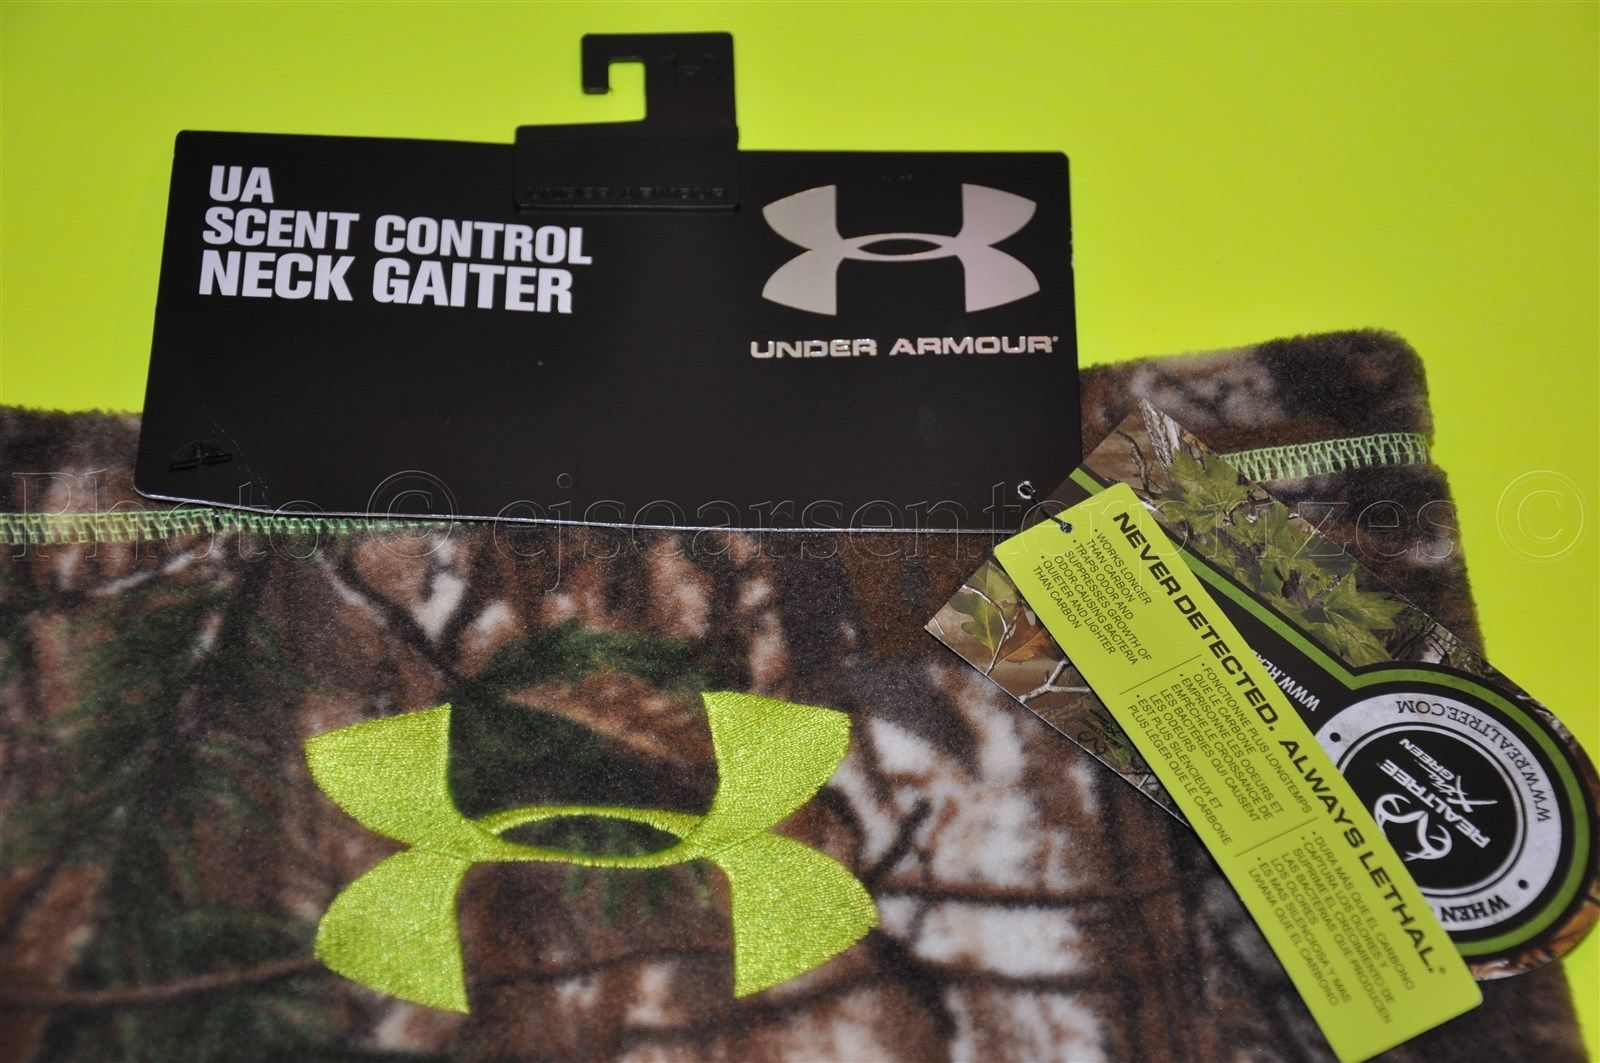 Extraordinary Under Armour Neck Gaiter | Fancy Fishingwear Neck